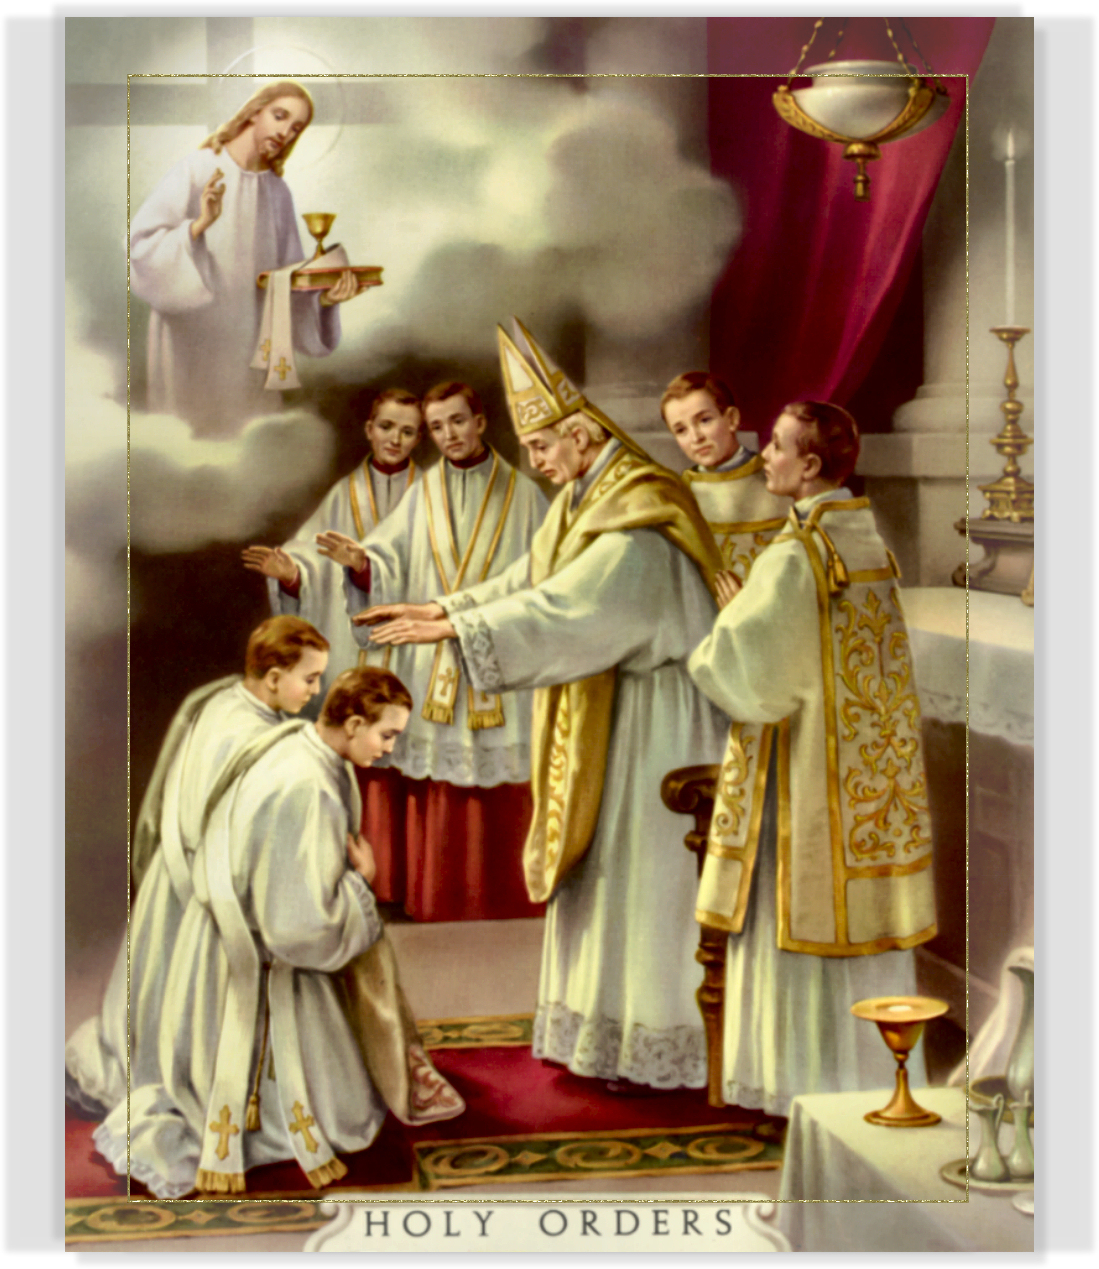 """sacrament of holy orders essay These sacraments are comprised of baptism, confirmation, confession, marriage, the appointment of priests or holy orders, and the anointing of the sick each of the above mentioned sacraments serve as a visible or outward sign of our """"inward grace""""."""